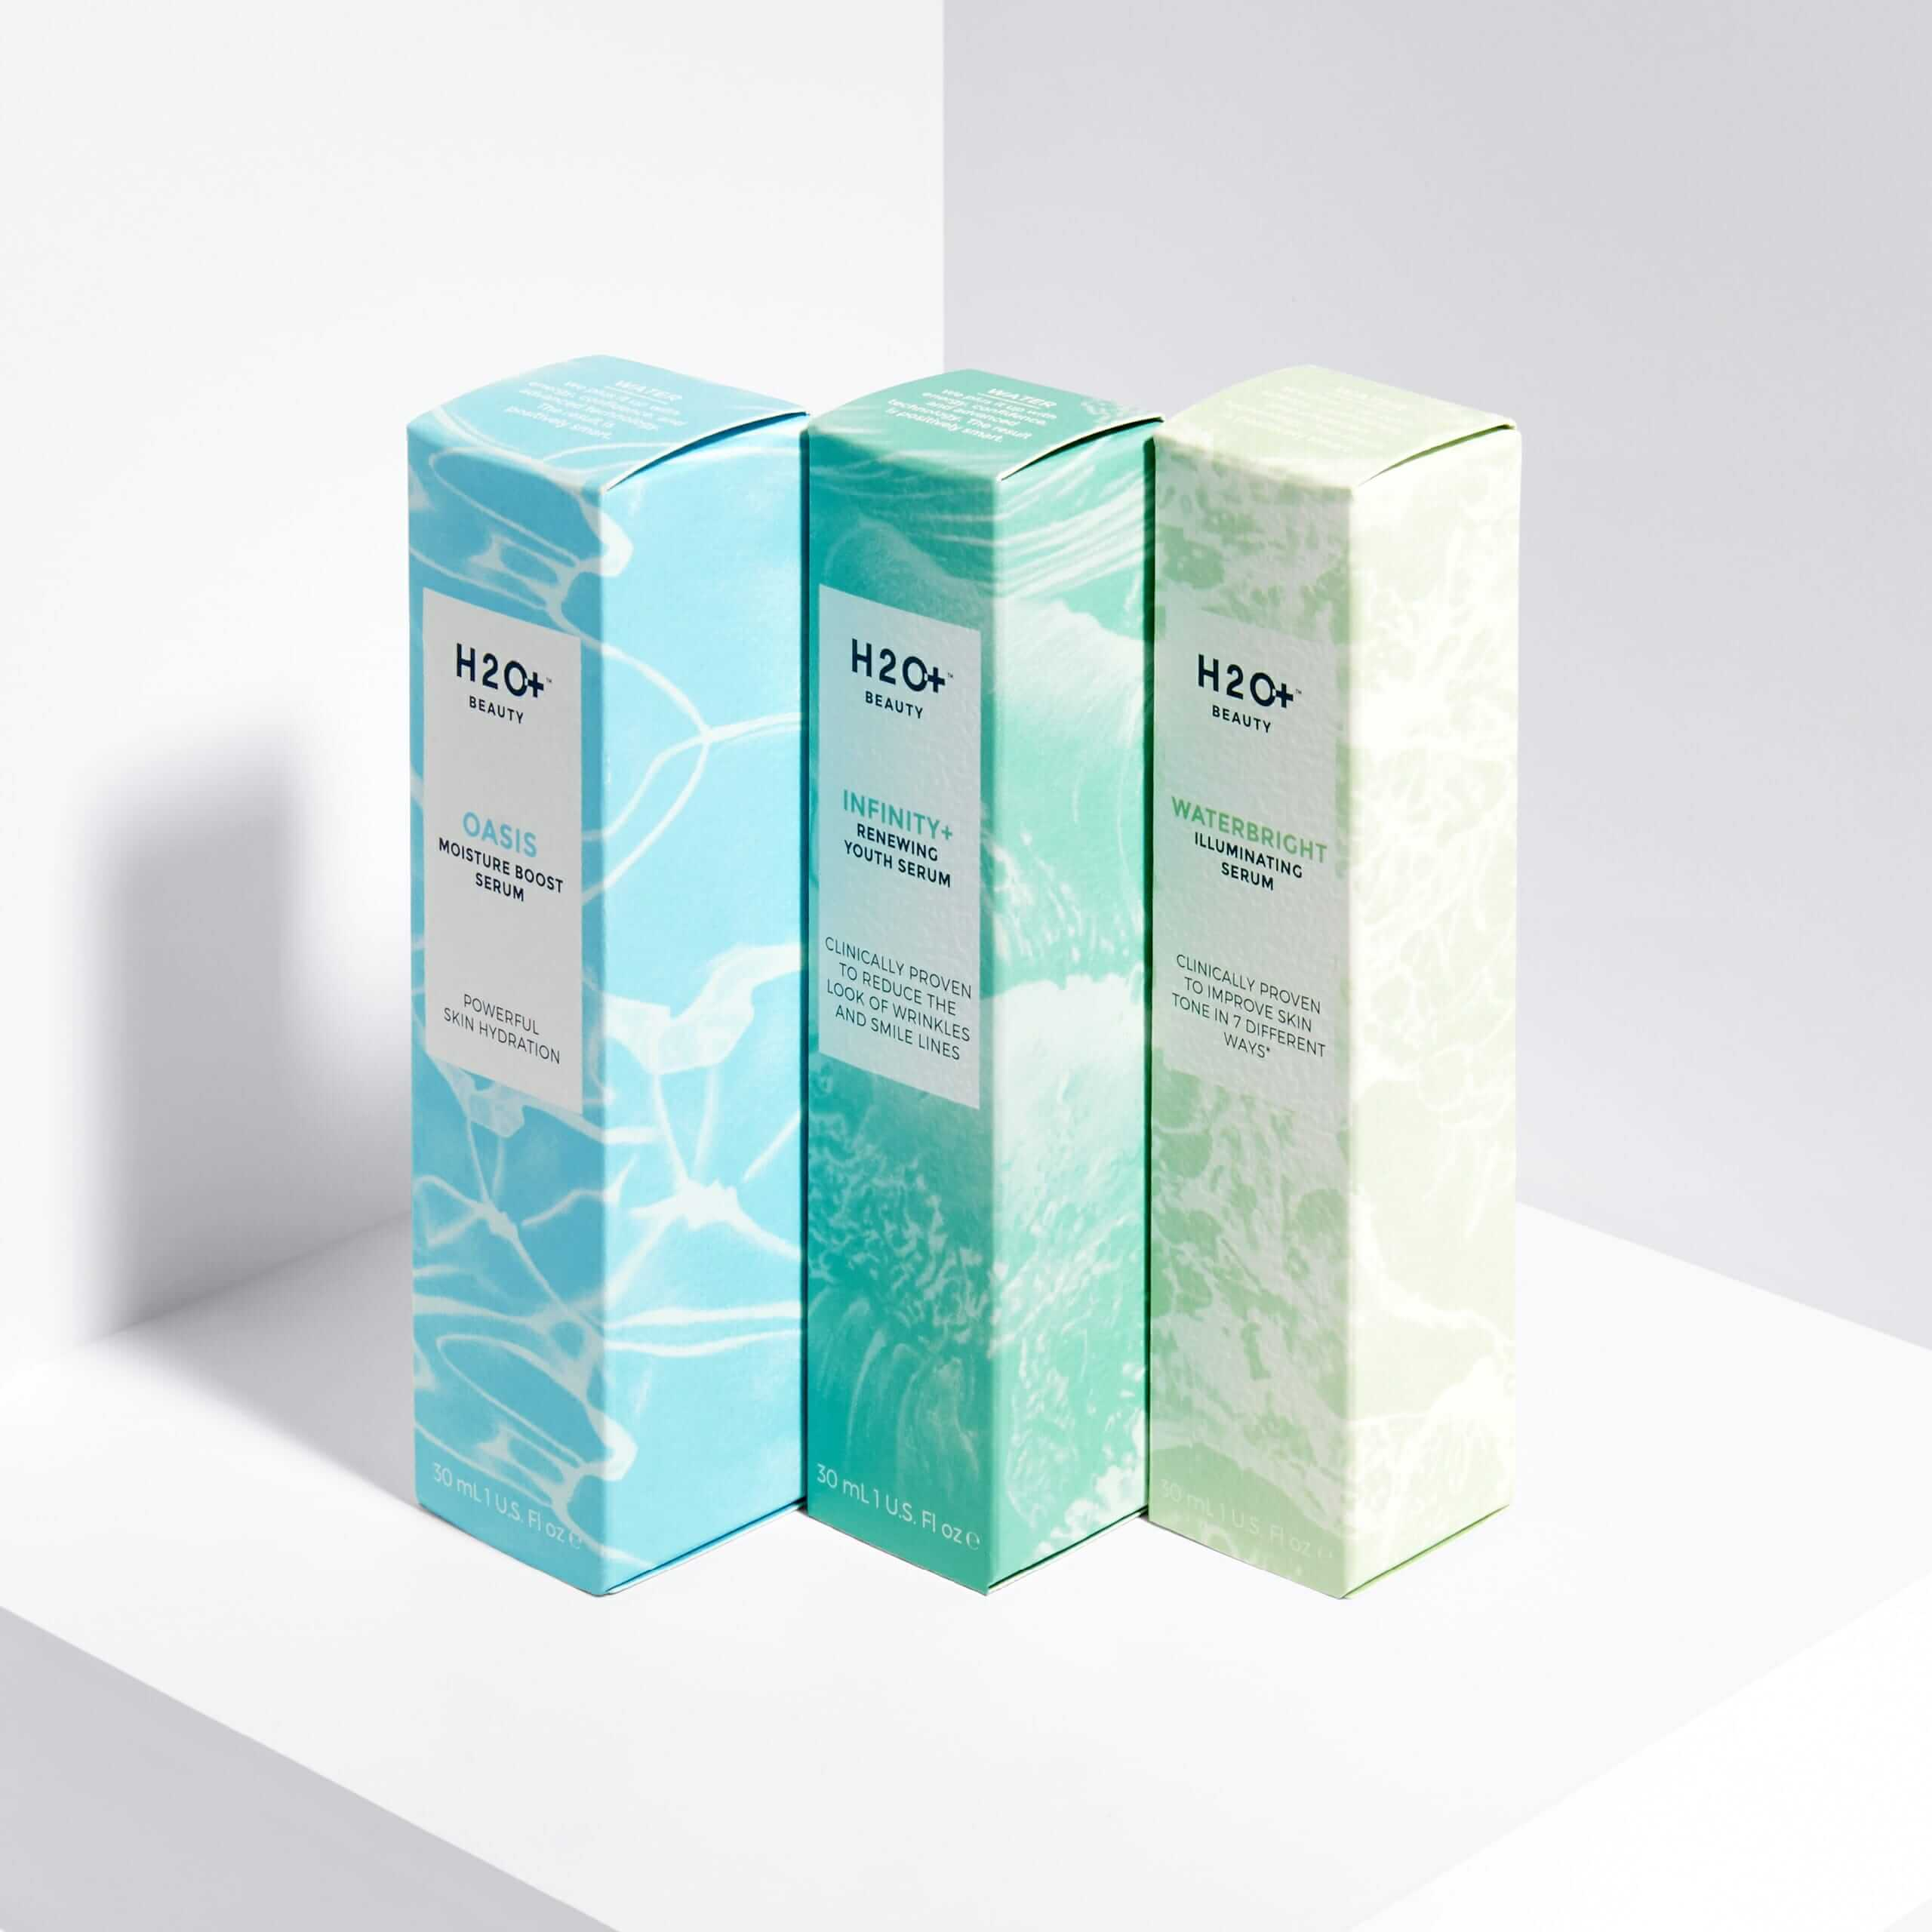 AI_H2O_Packaging_LR_3